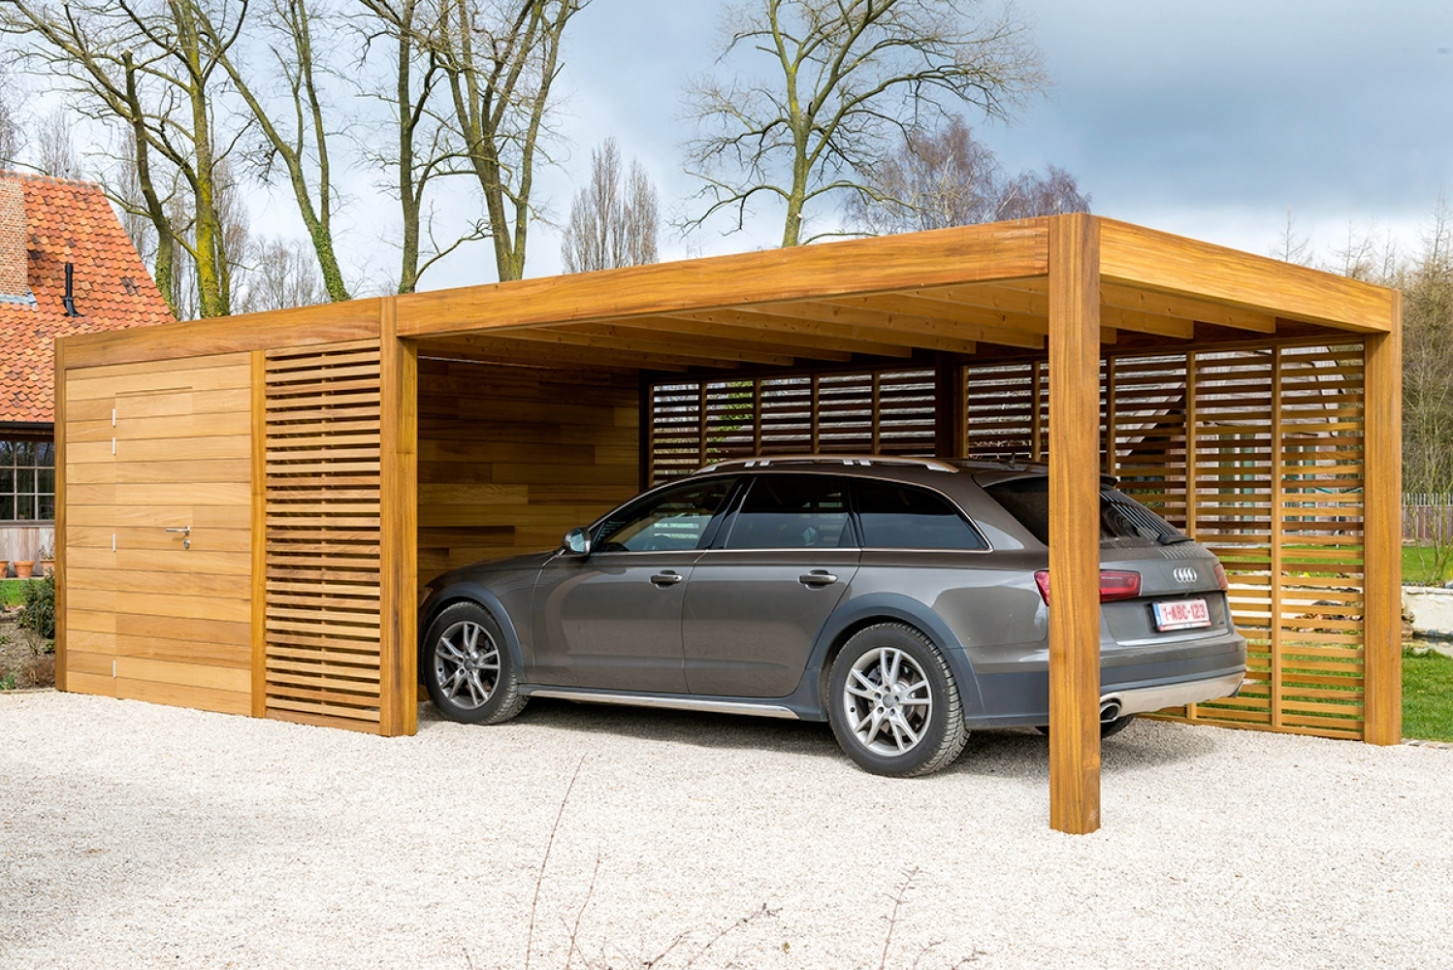 Carport Of Garage In Hout Met Berging Of Fietsstalling ..